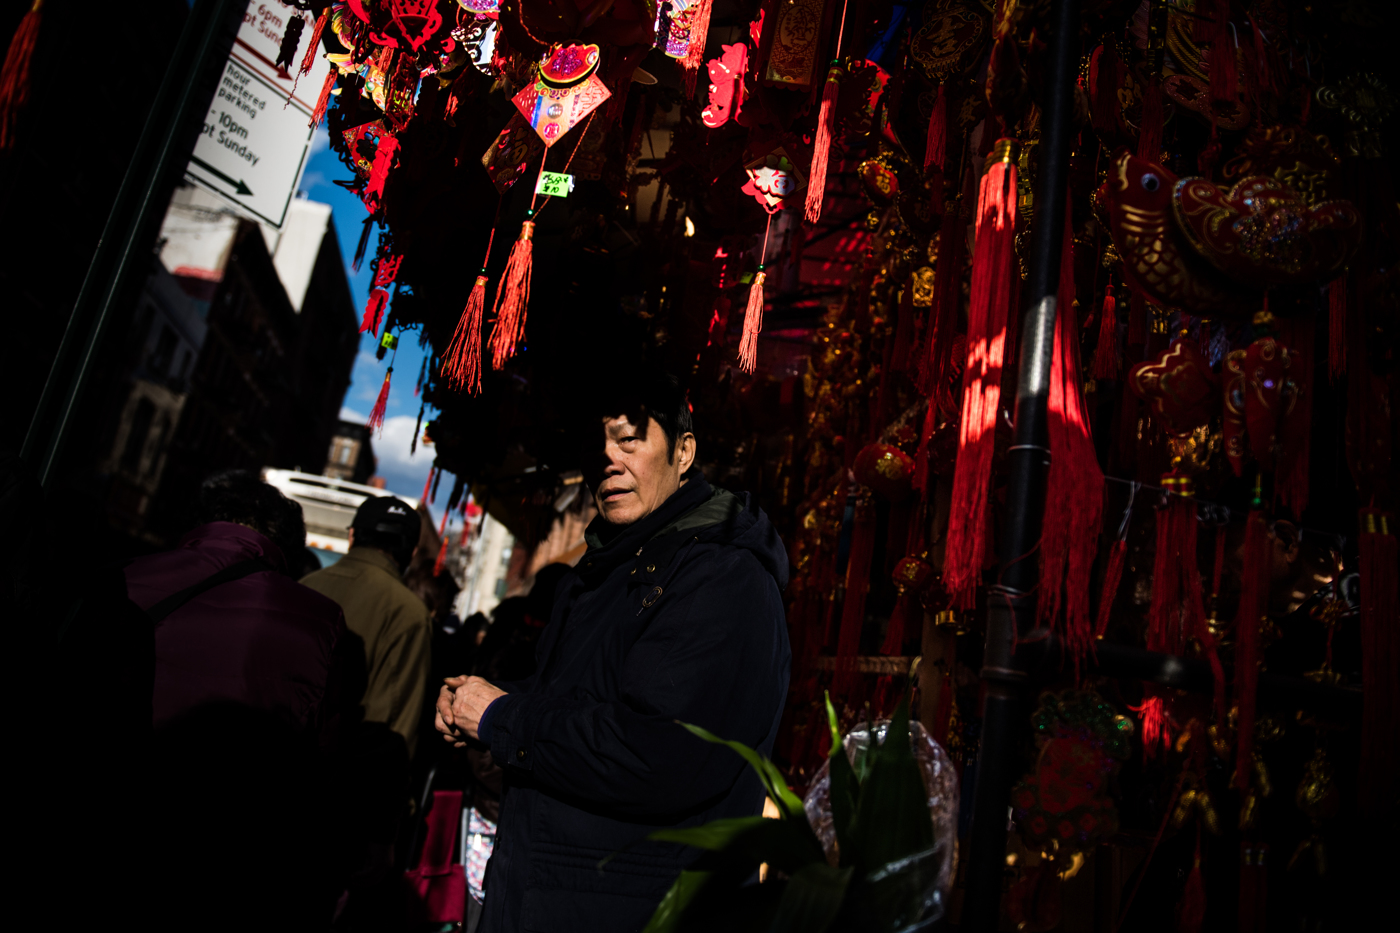 A man organizes merchandise at a store selling items in preparation for Chinese New Year in the Chinatown neighborhood of Manhattan in New York, NY.